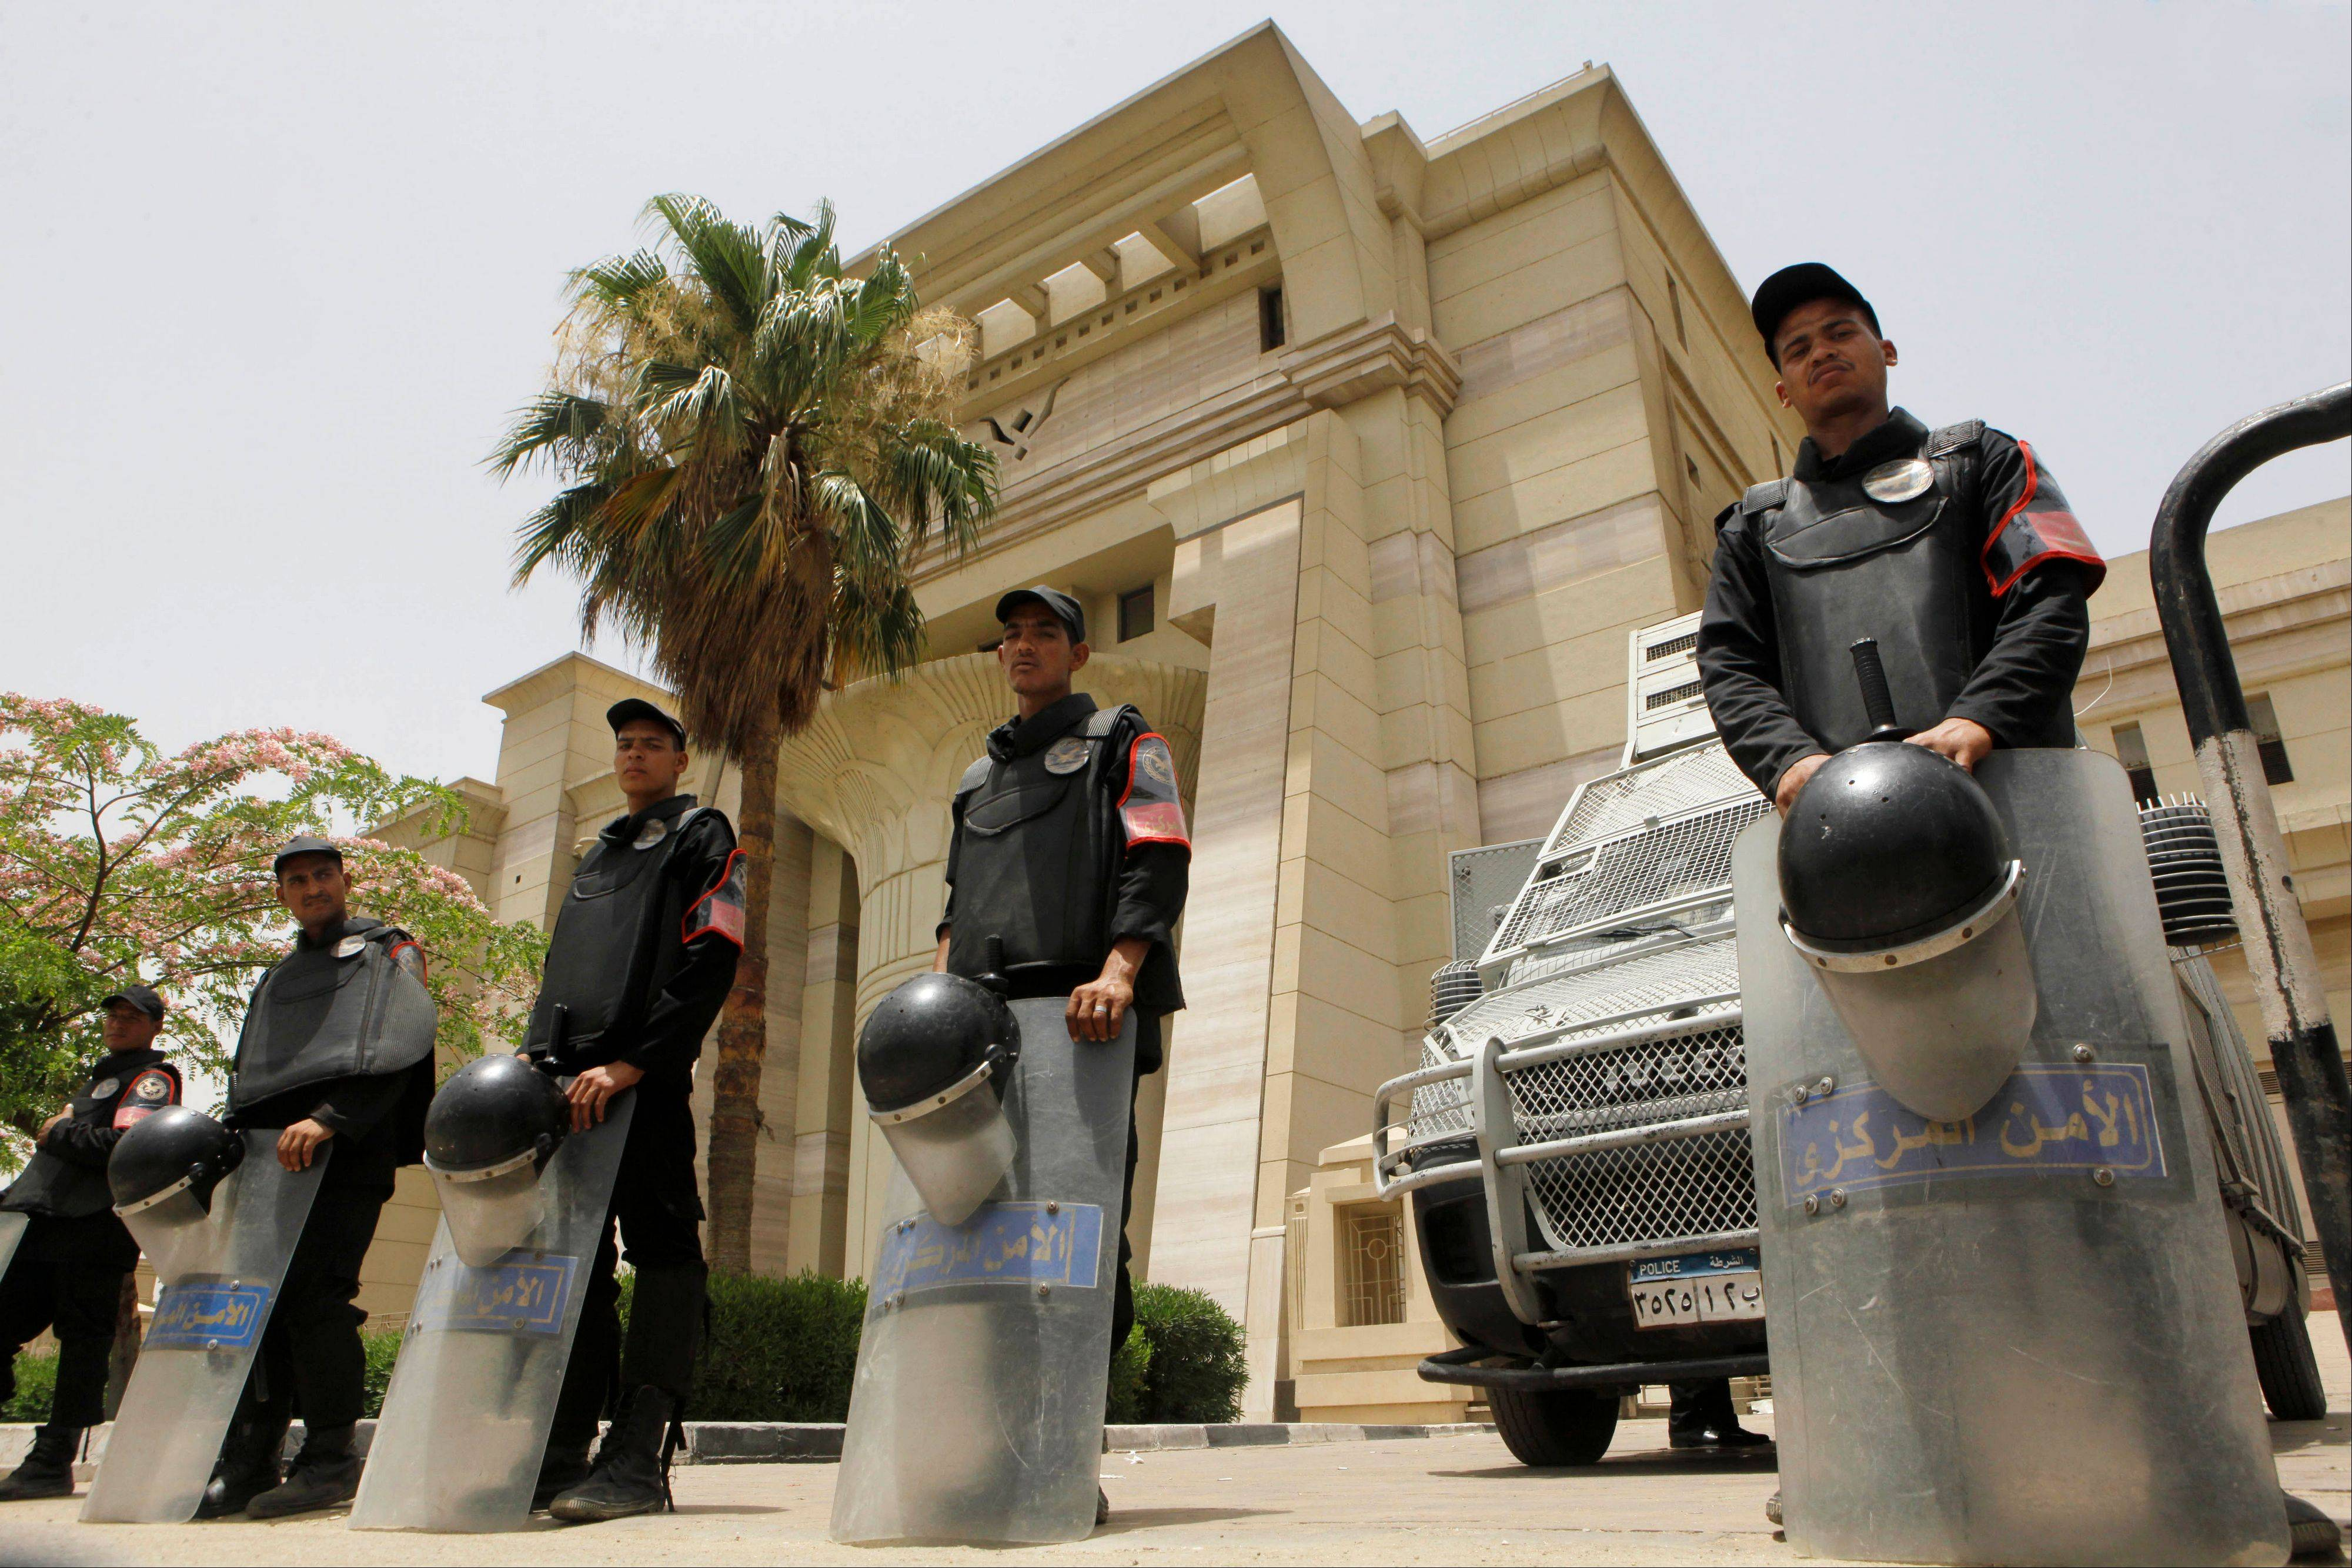 Egyptian anti-riot police stand gurad in front of the Supreme Constitutional Court in Cairo, Egypt, Sunday. An Egyptian court ruled Sunday the nation�s Islamist-dominated legislature and constitutional panel were illegally elected and that the legislature�s upper house, the only one currently sitting, must be dissolved when parliament�s lower chamber is elected later this year or early in 2014.